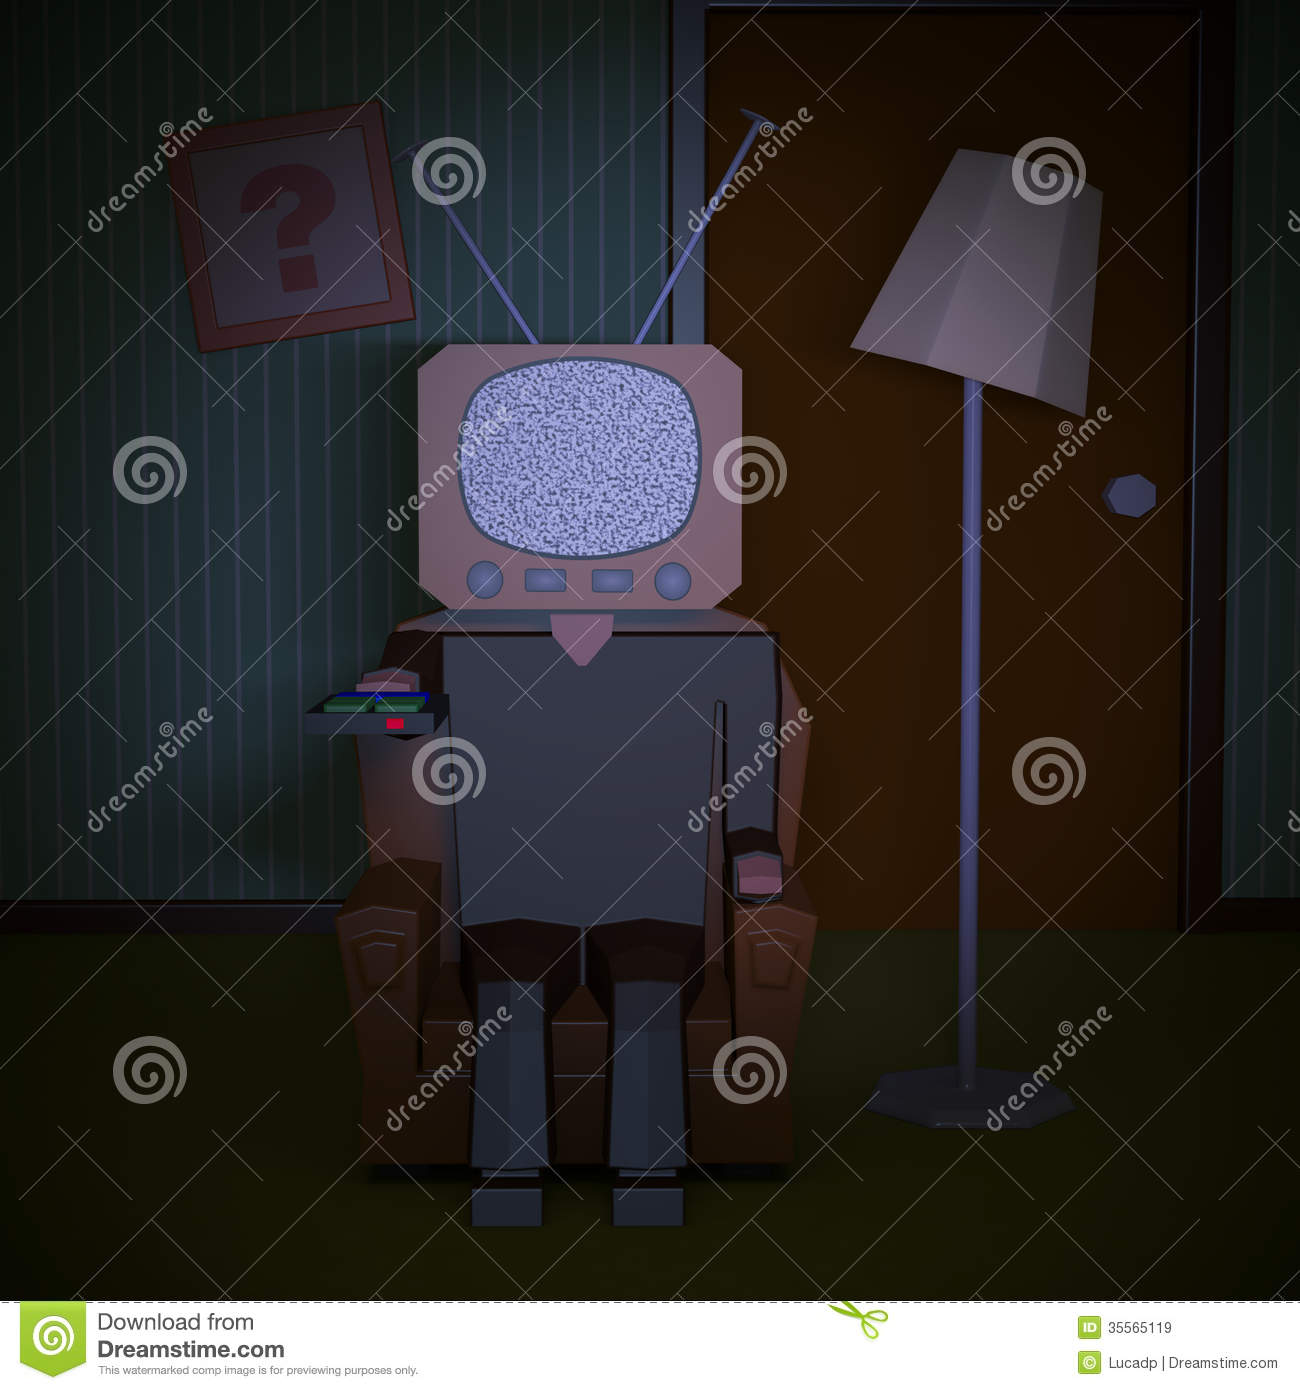 alienation loneliness in the yellow View homework help - frankenstein theme topics from ap english 1 at ball h s frankenstein theme topics alienation and loneliness everyone can his yellow skin scarcely covered the work of muscles and arteries beneath his hair was of a lustrous black, and flowing his teeth of a pearly whiteness but these.